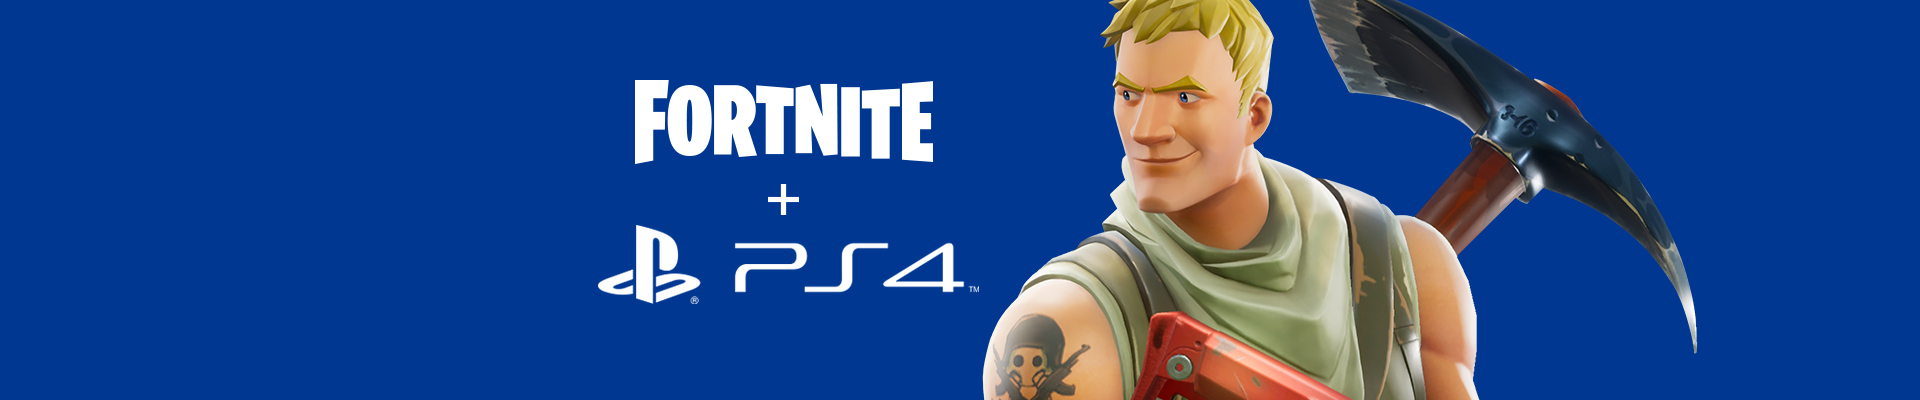 Fortnite and PlayStation Cross Platform